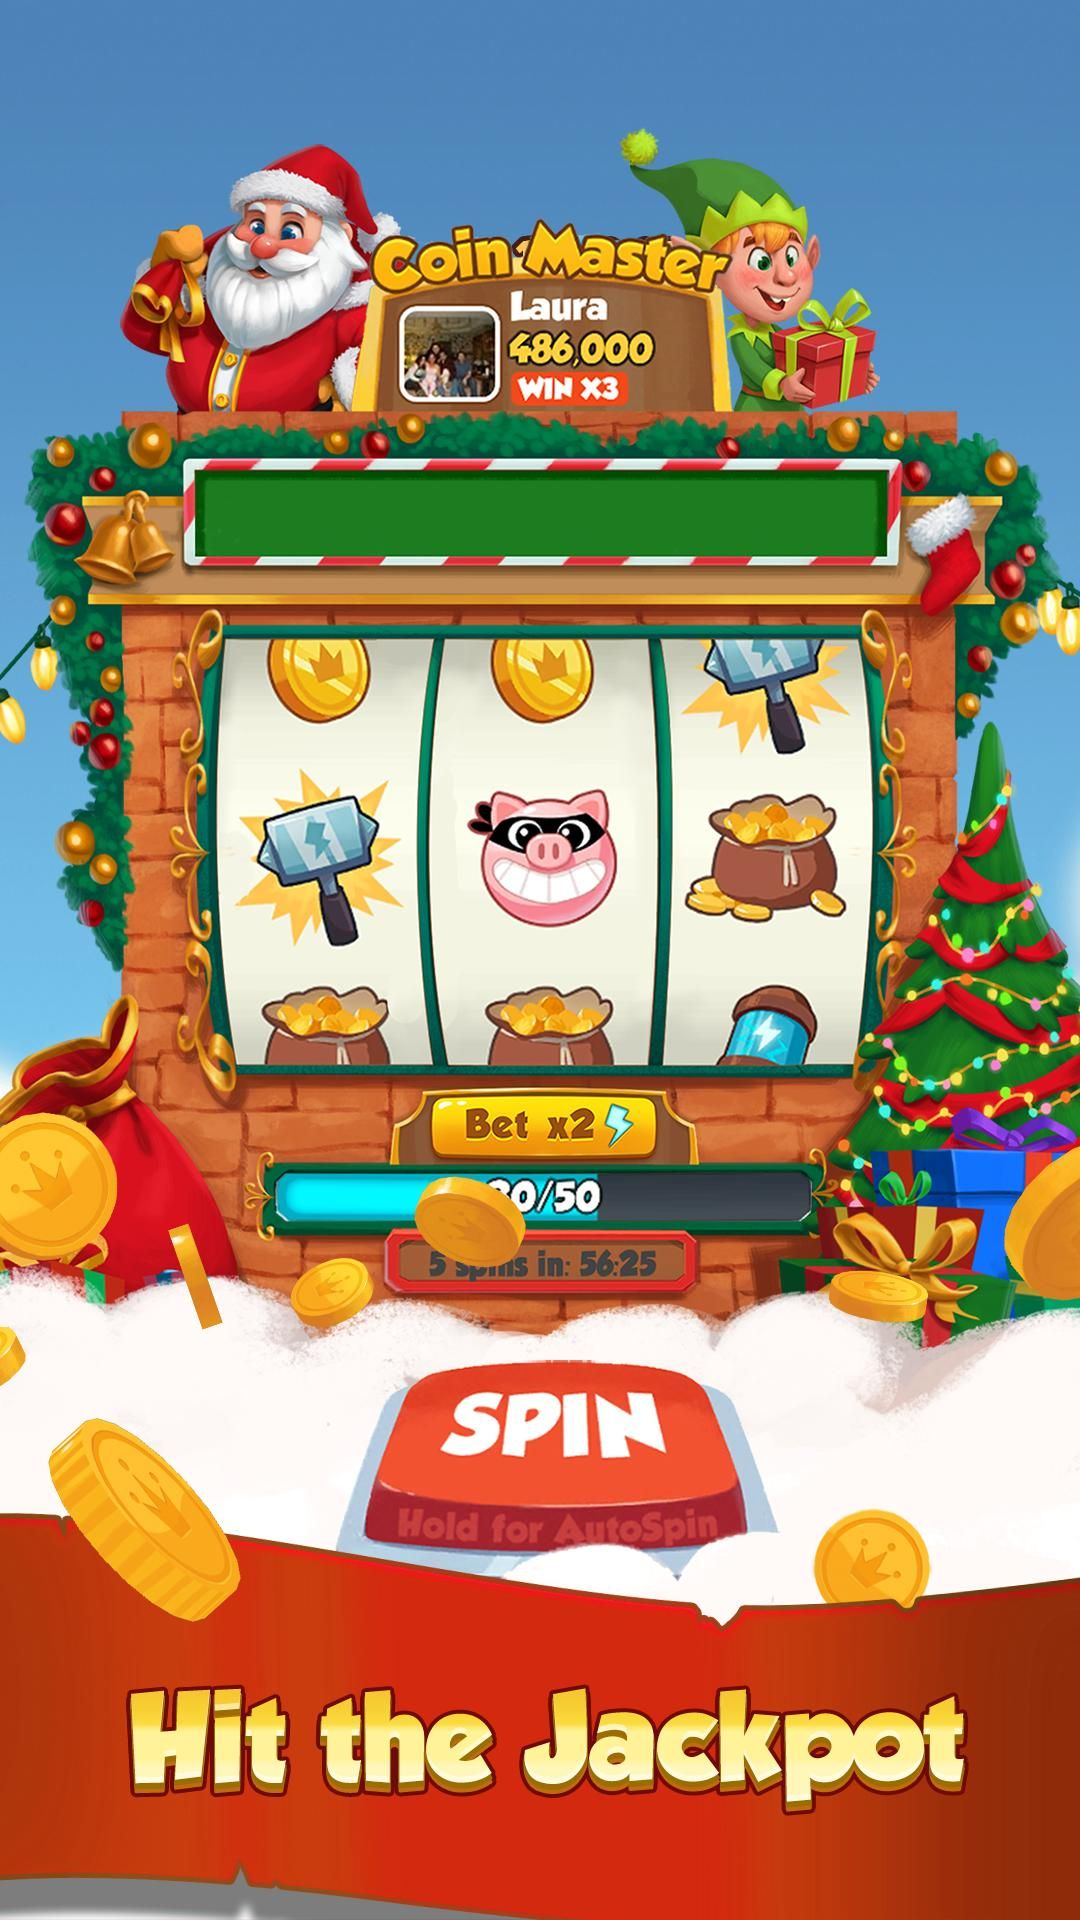 Free Coin Master Spins Links 27/01/2020 084424 in 2020